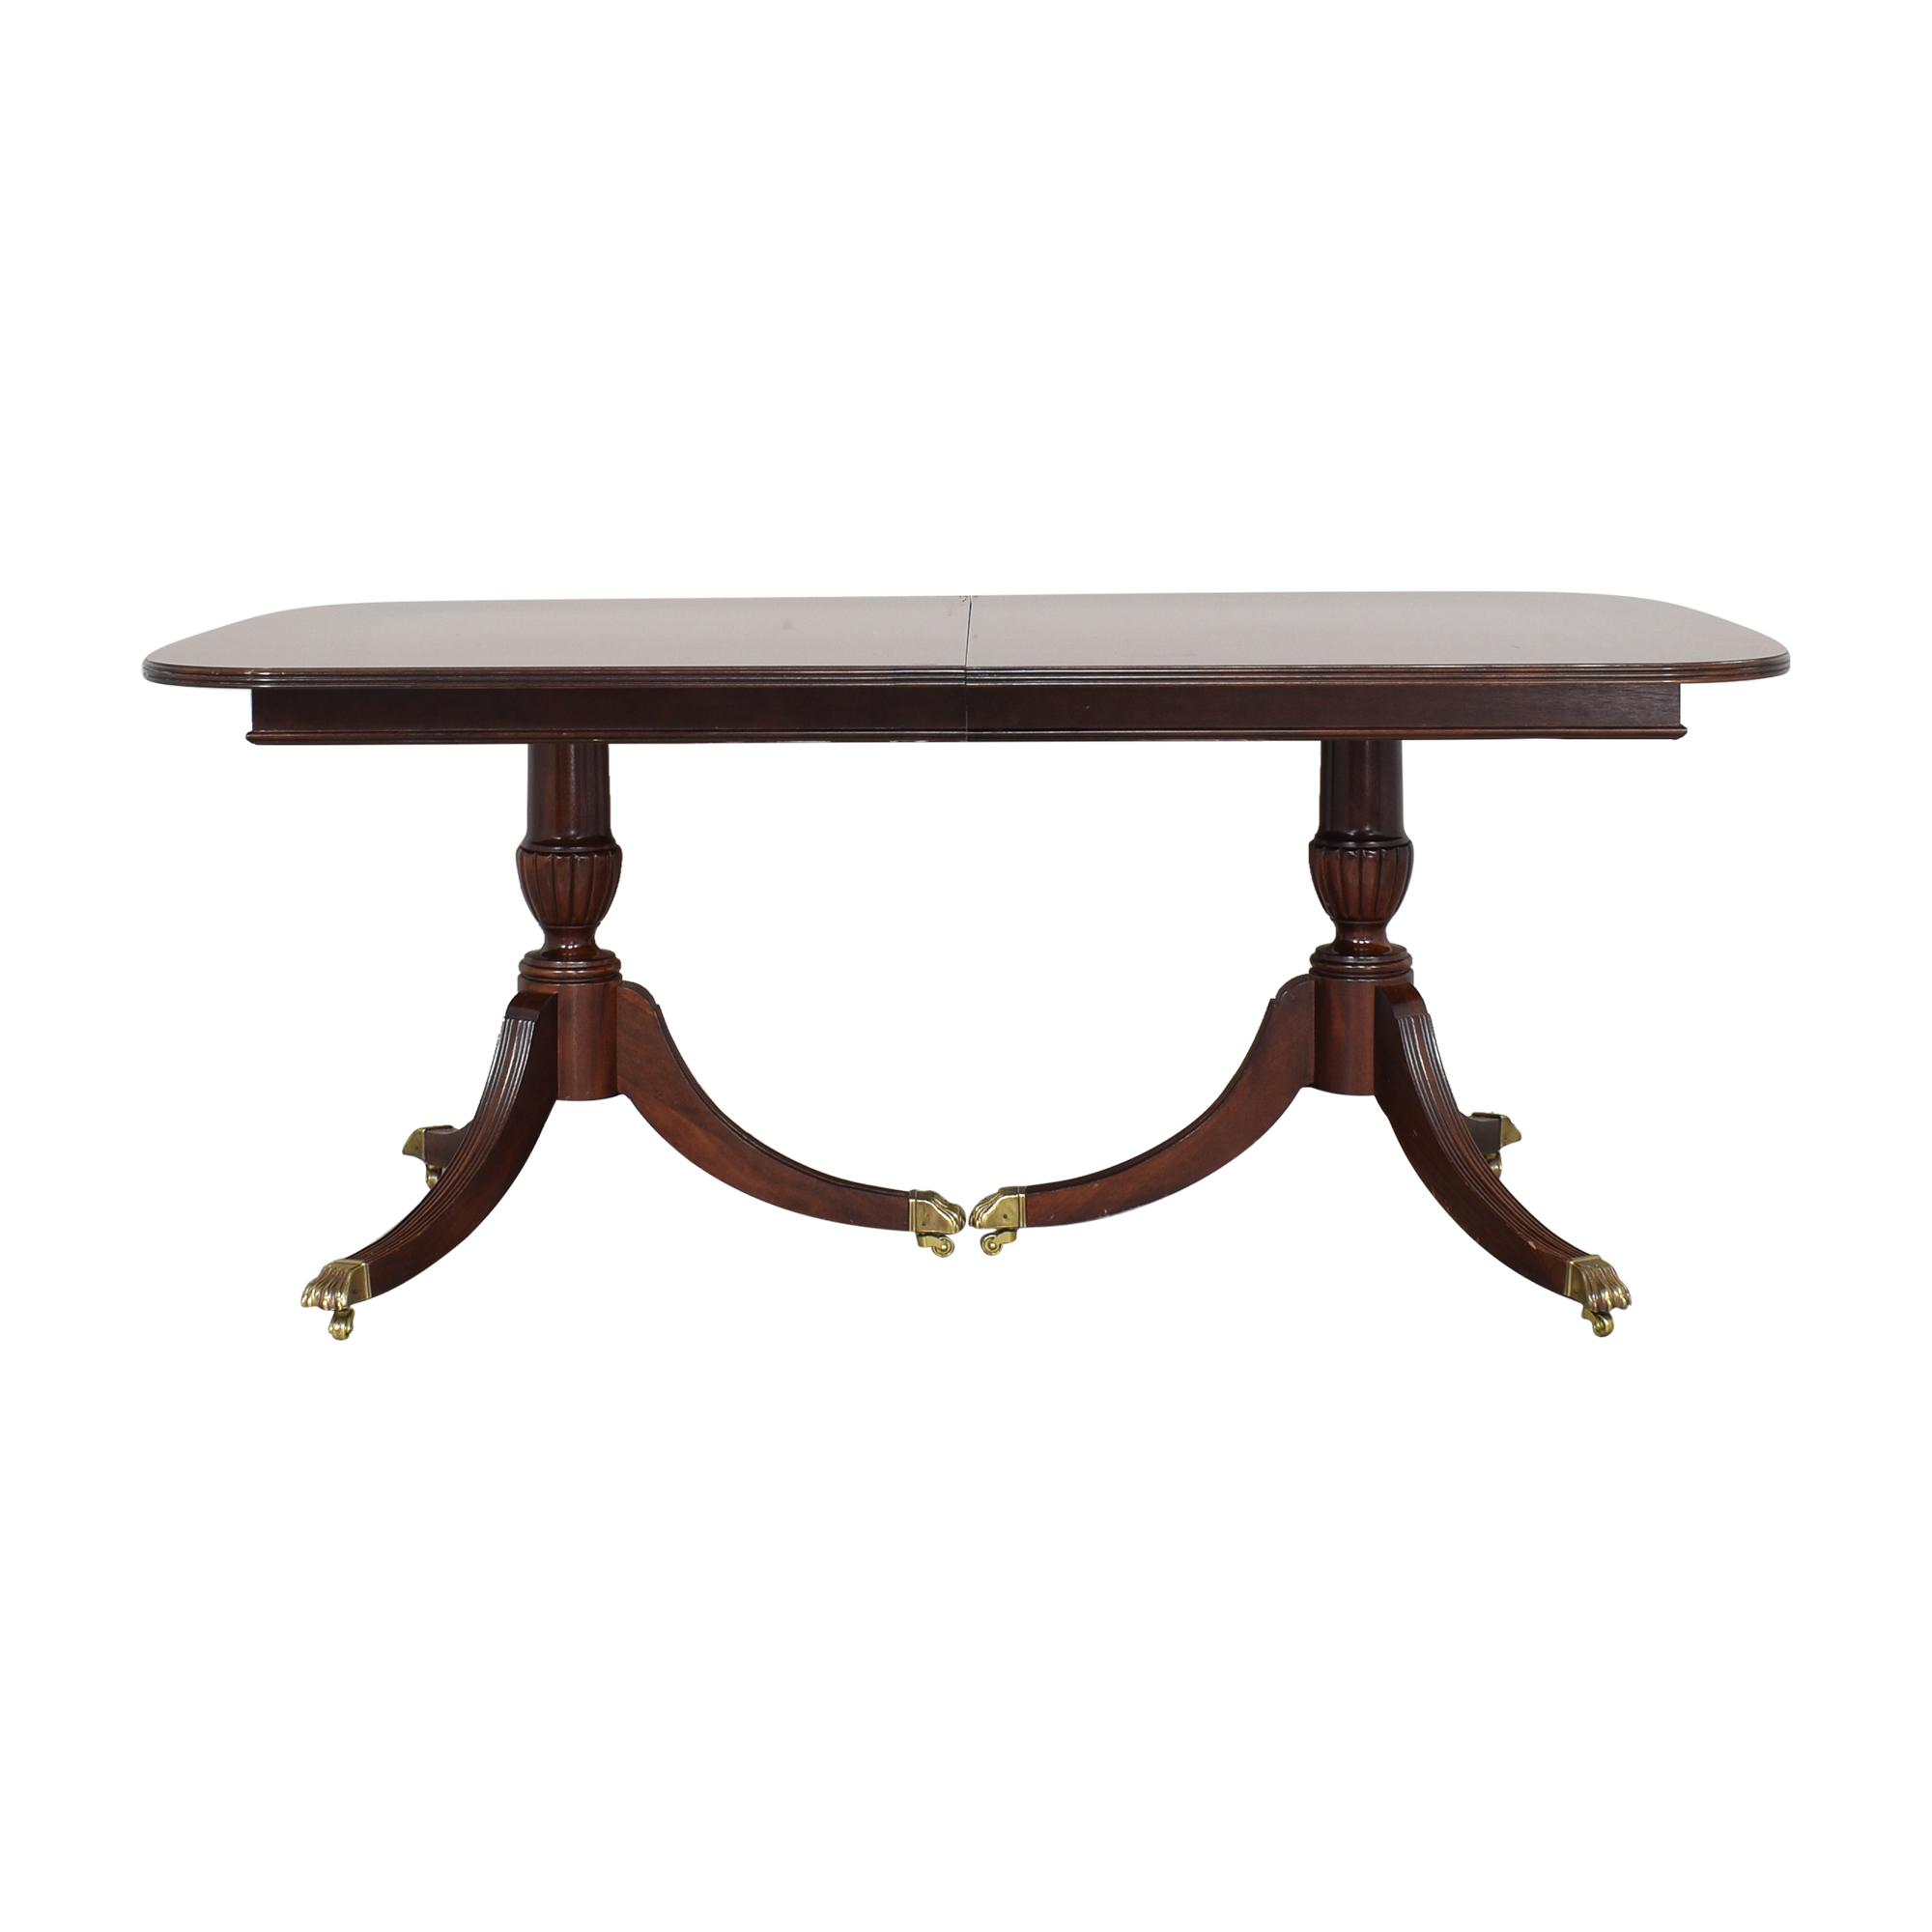 Thomasville Thomasville Extendable Dining Table used